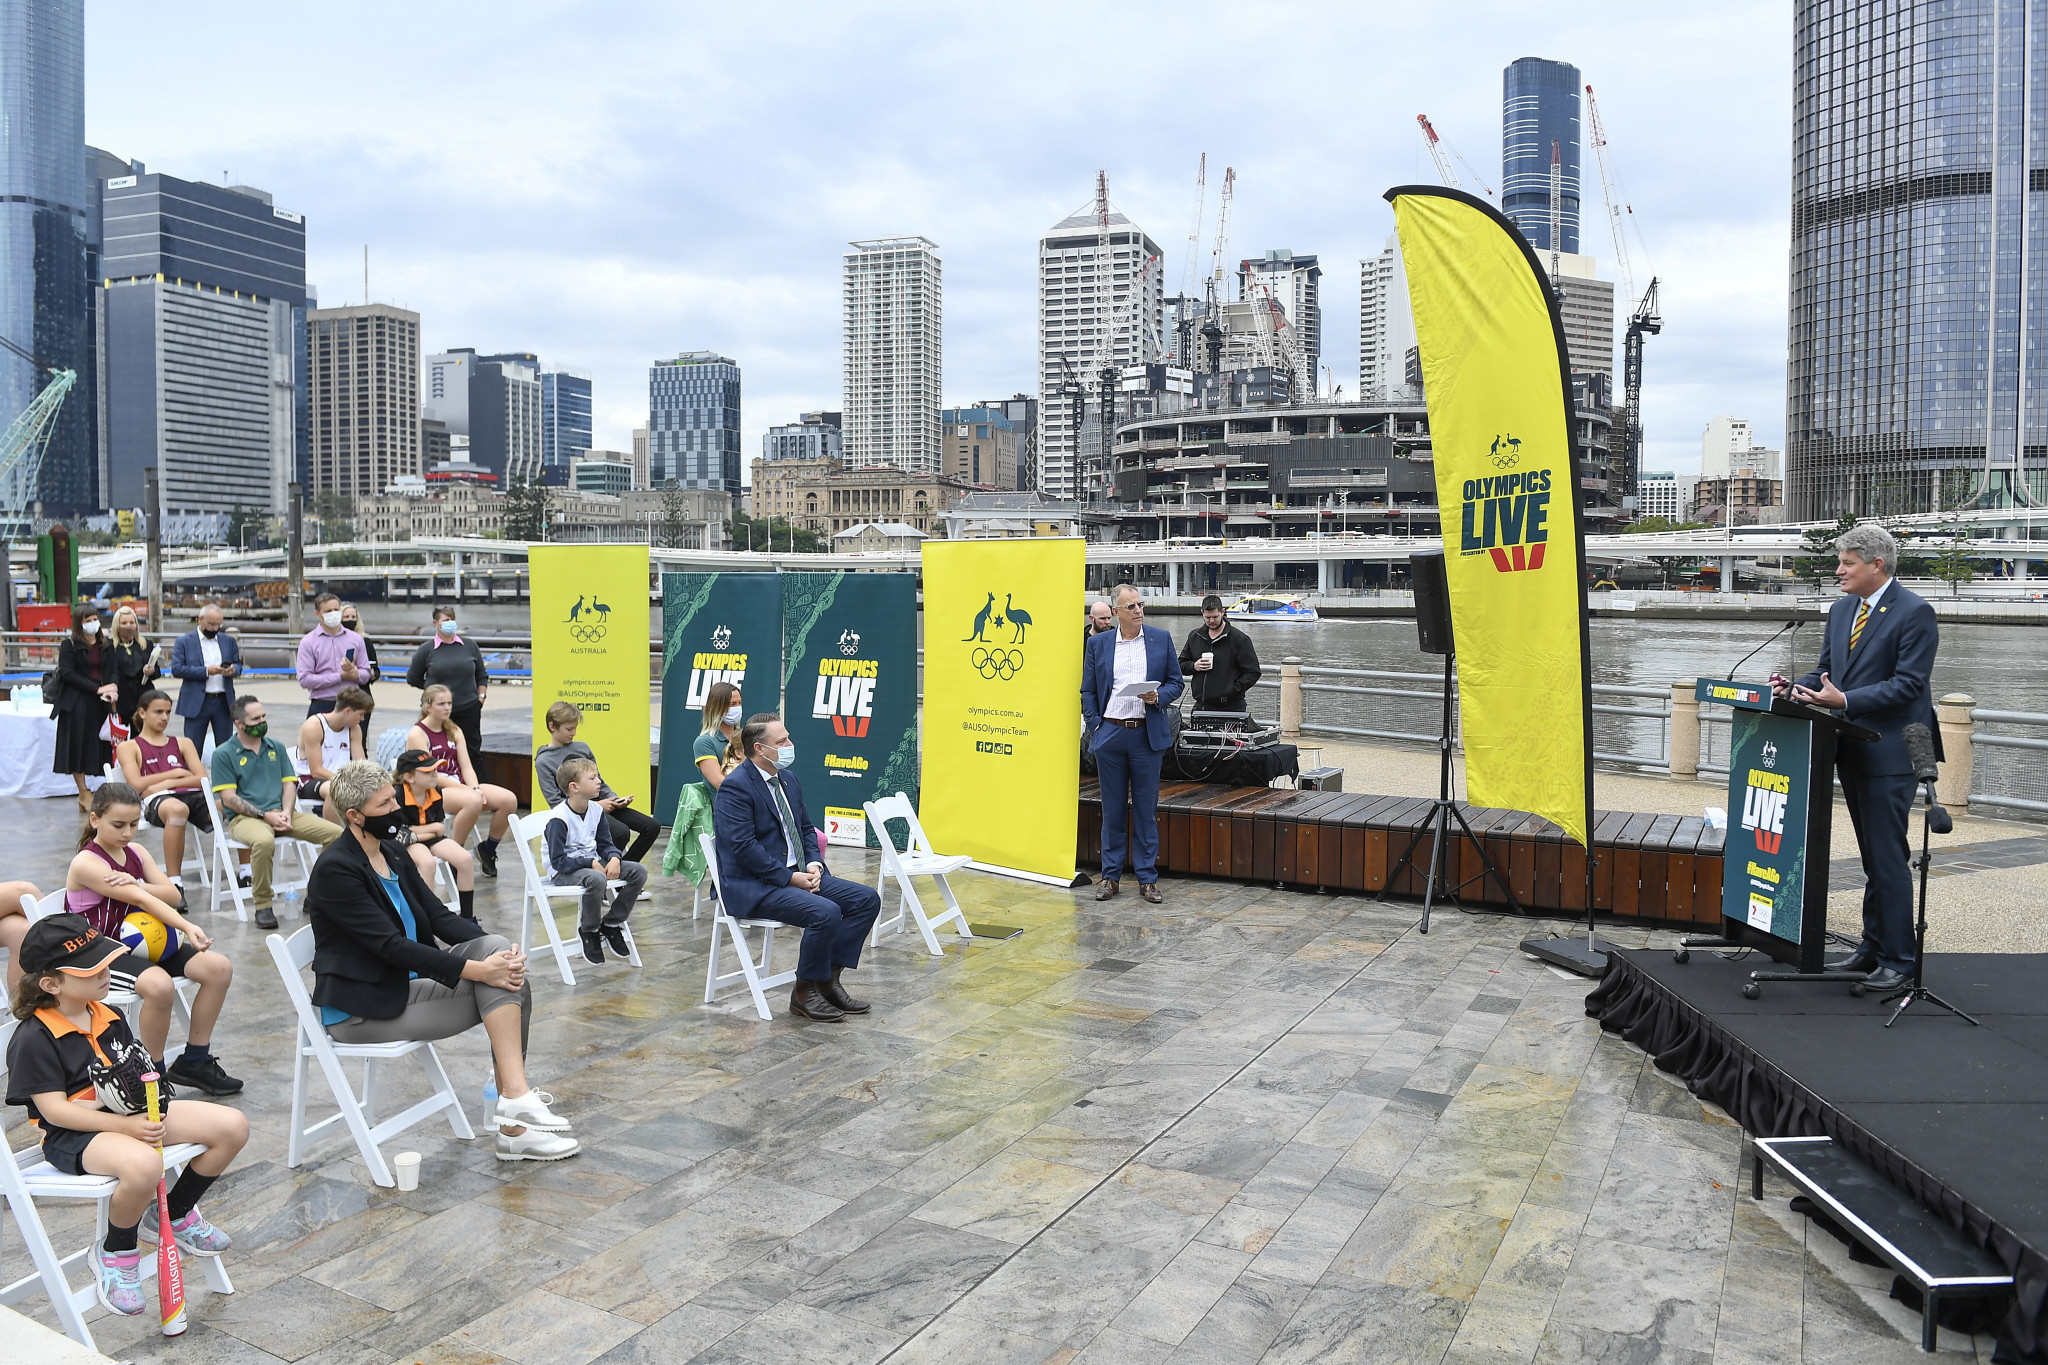 Brisbane to hold live site as city prepares to be named 2032 Olympic Games host